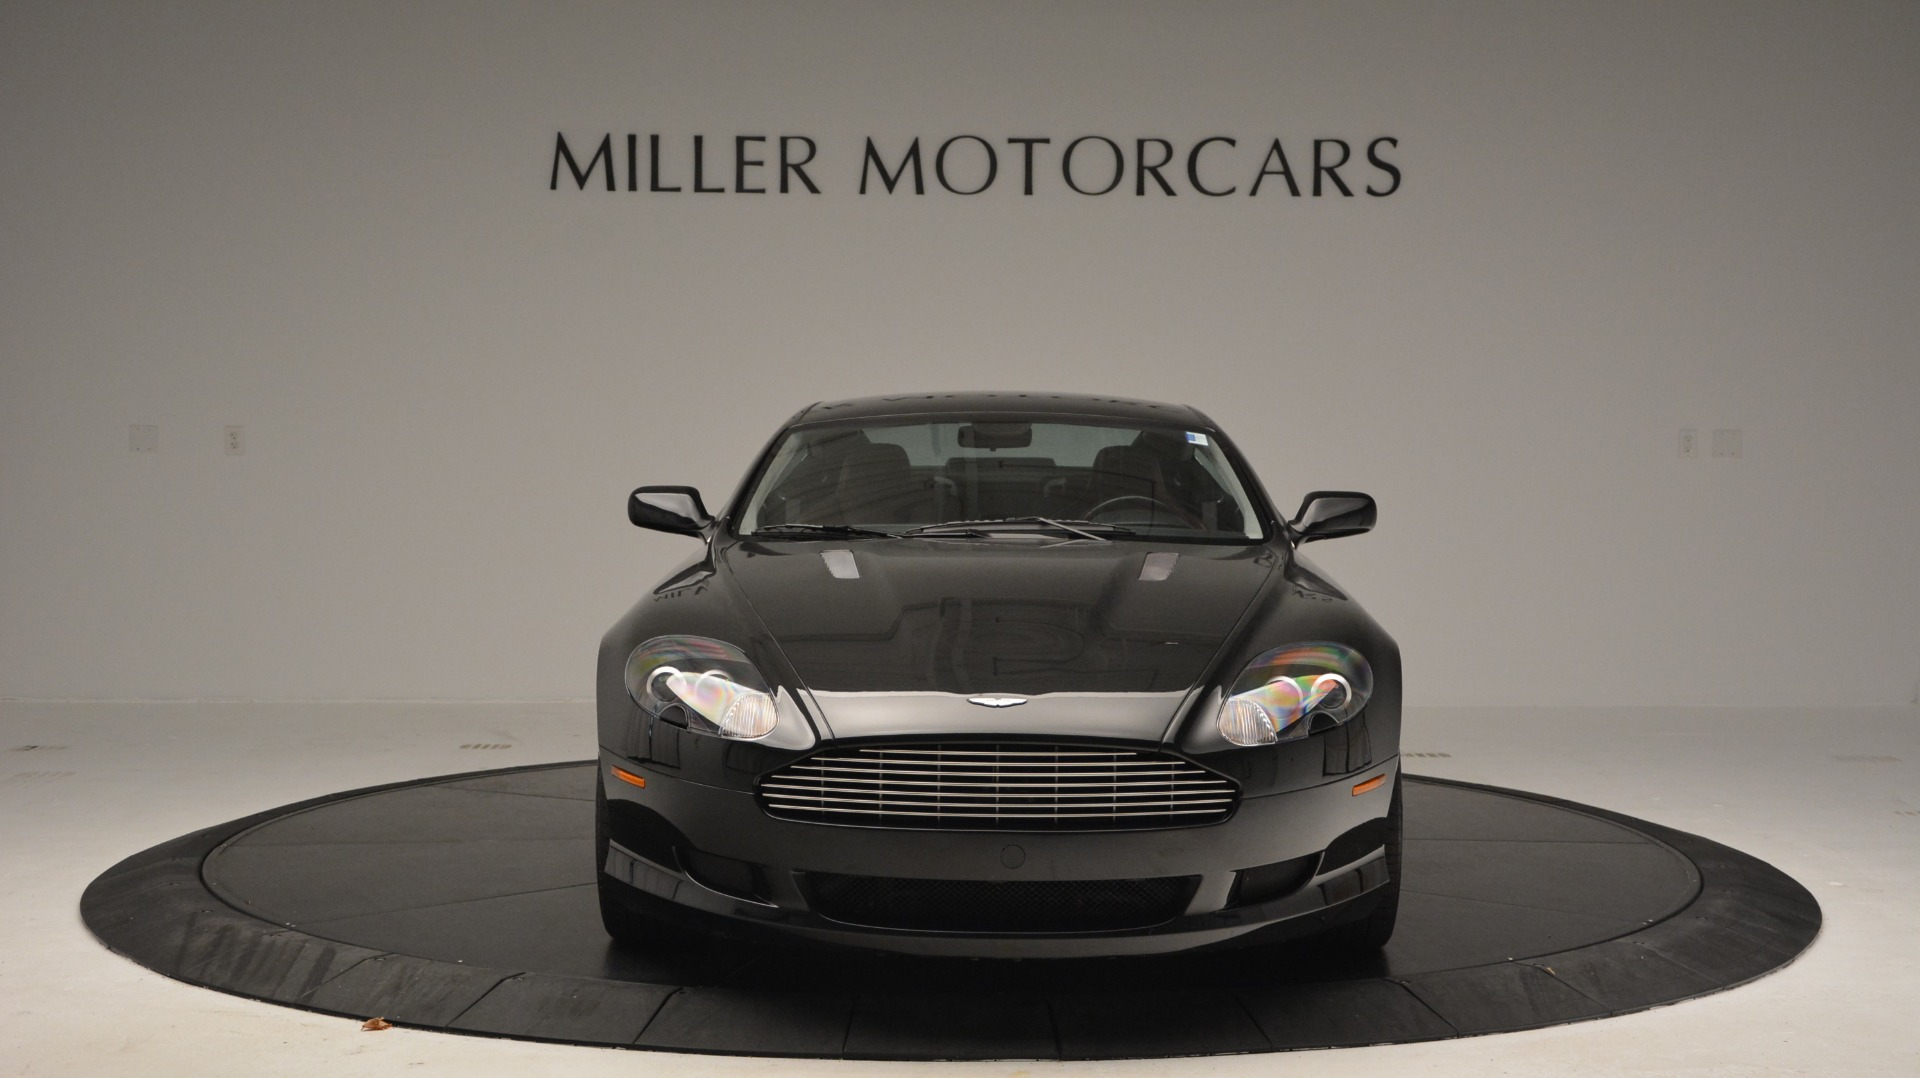 Used 2006 Aston Martin DB9 Coupe For Sale In Westport, CT 2832_p12